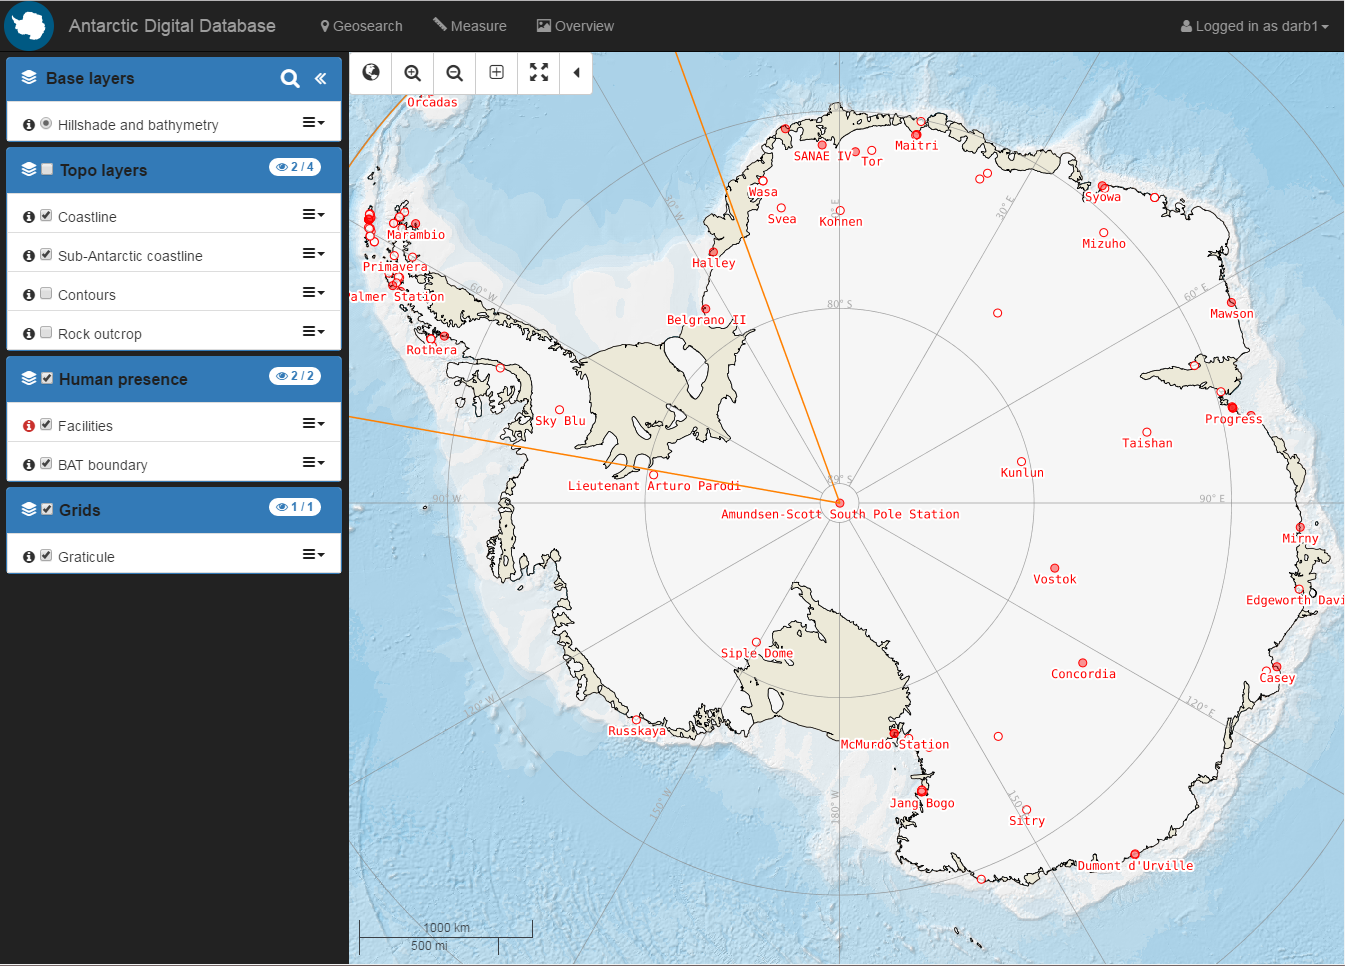 Antarctic Digital Database Mapping Services on